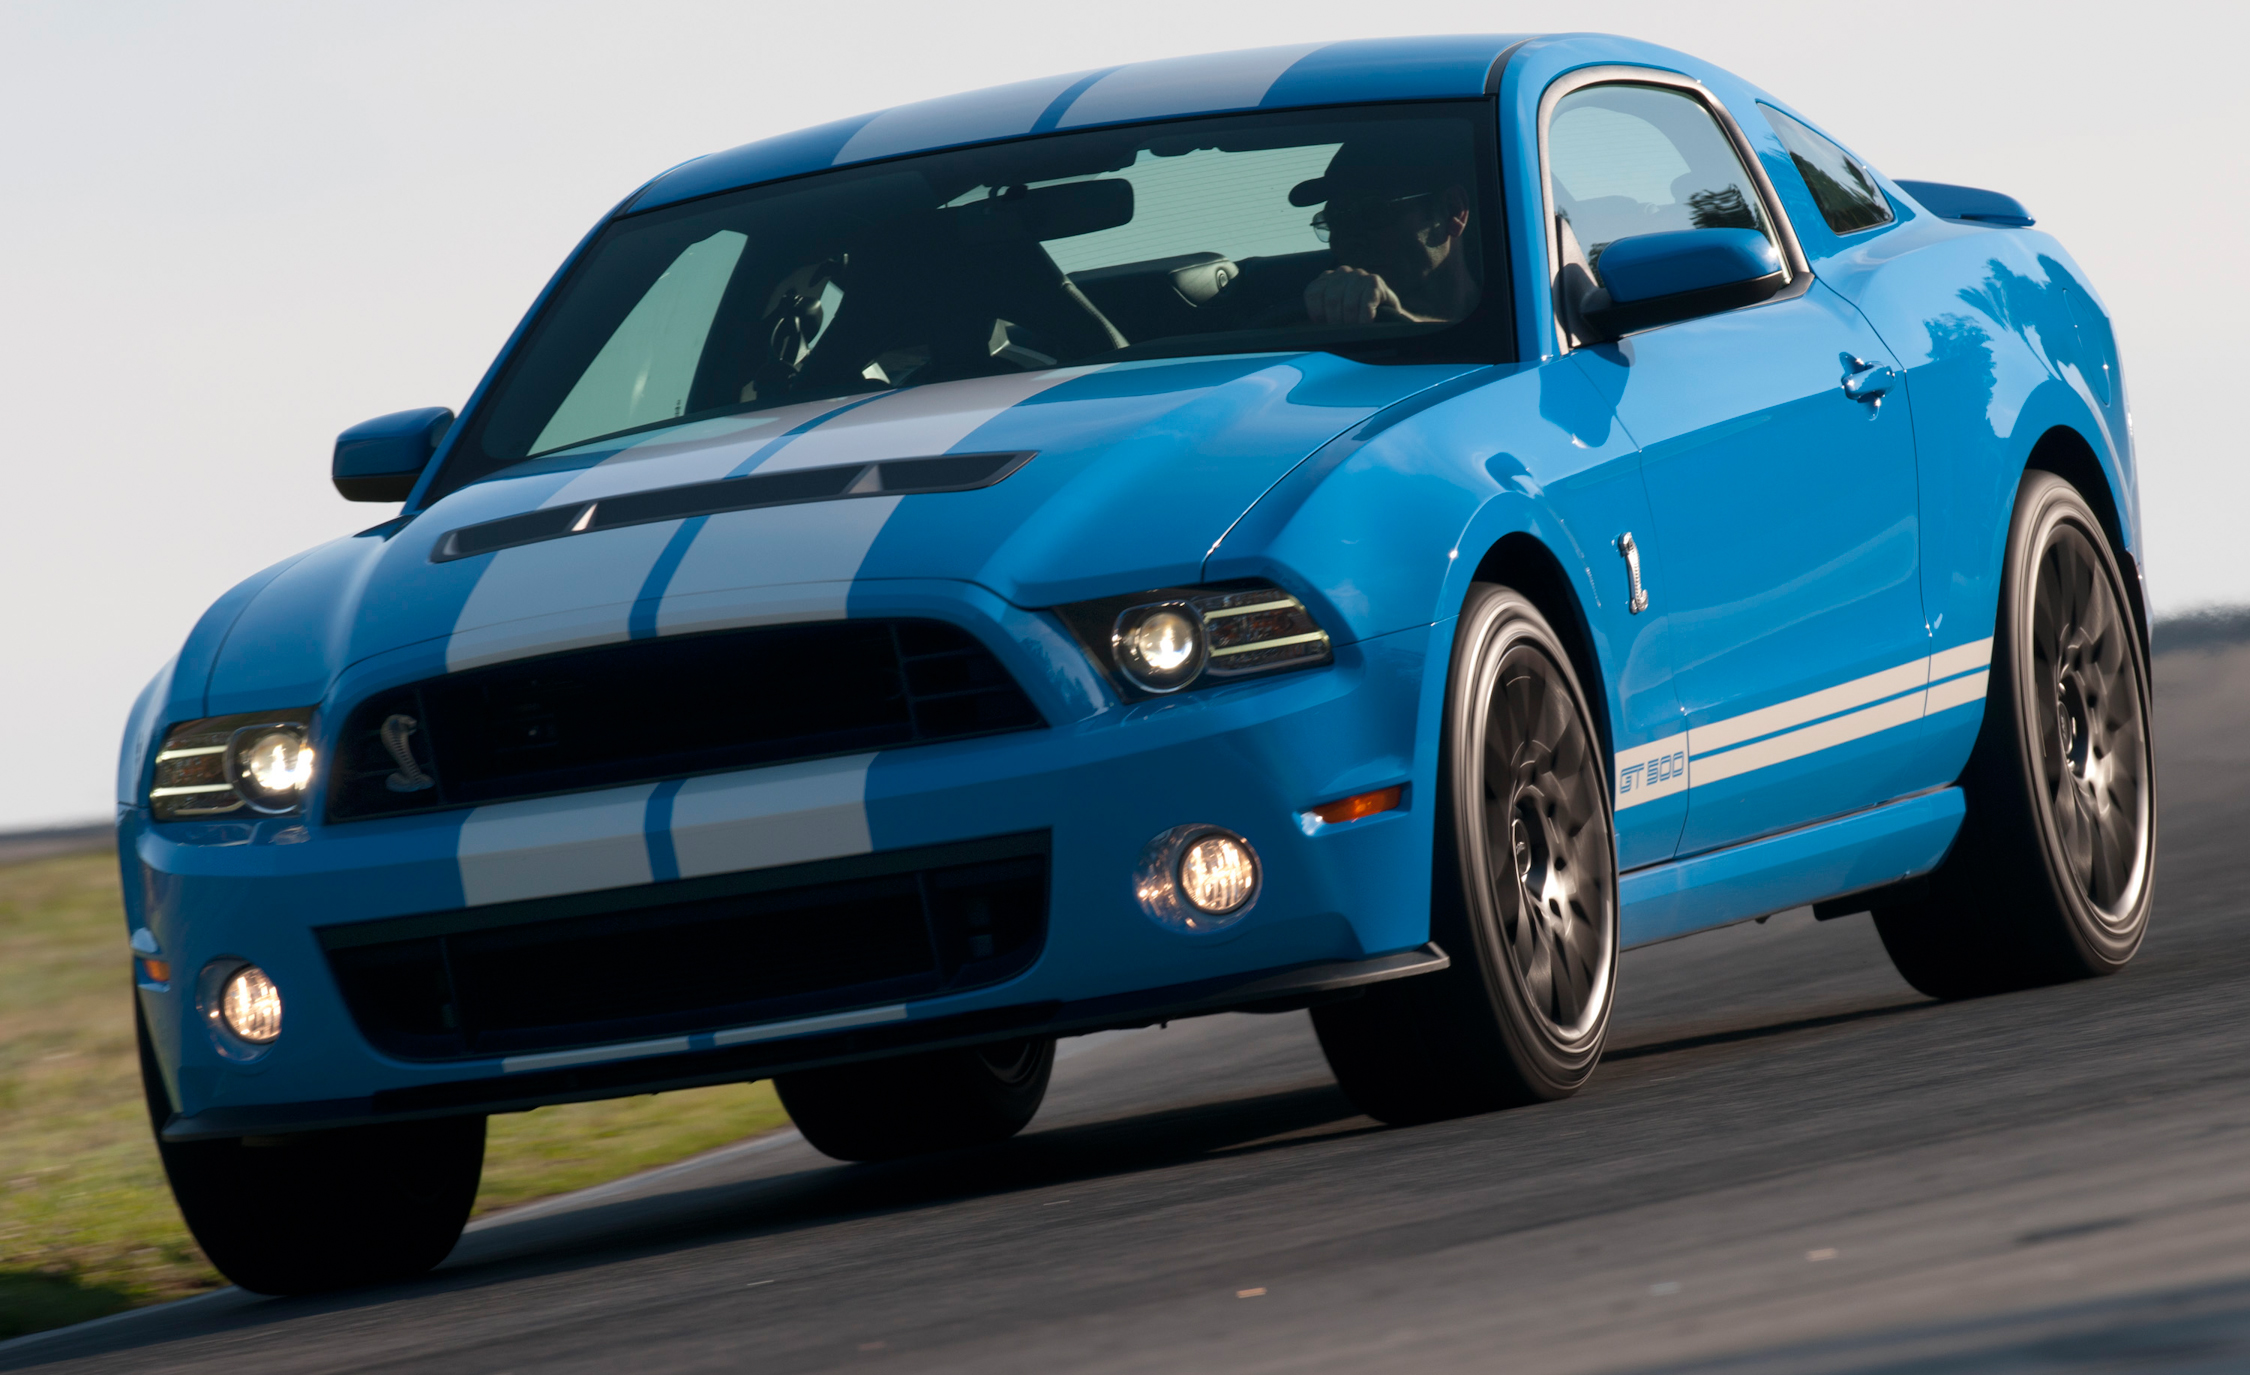 2013 Ford Mustang Shelby GT500 Blue Test Drive Circuit (View 37 of 47)